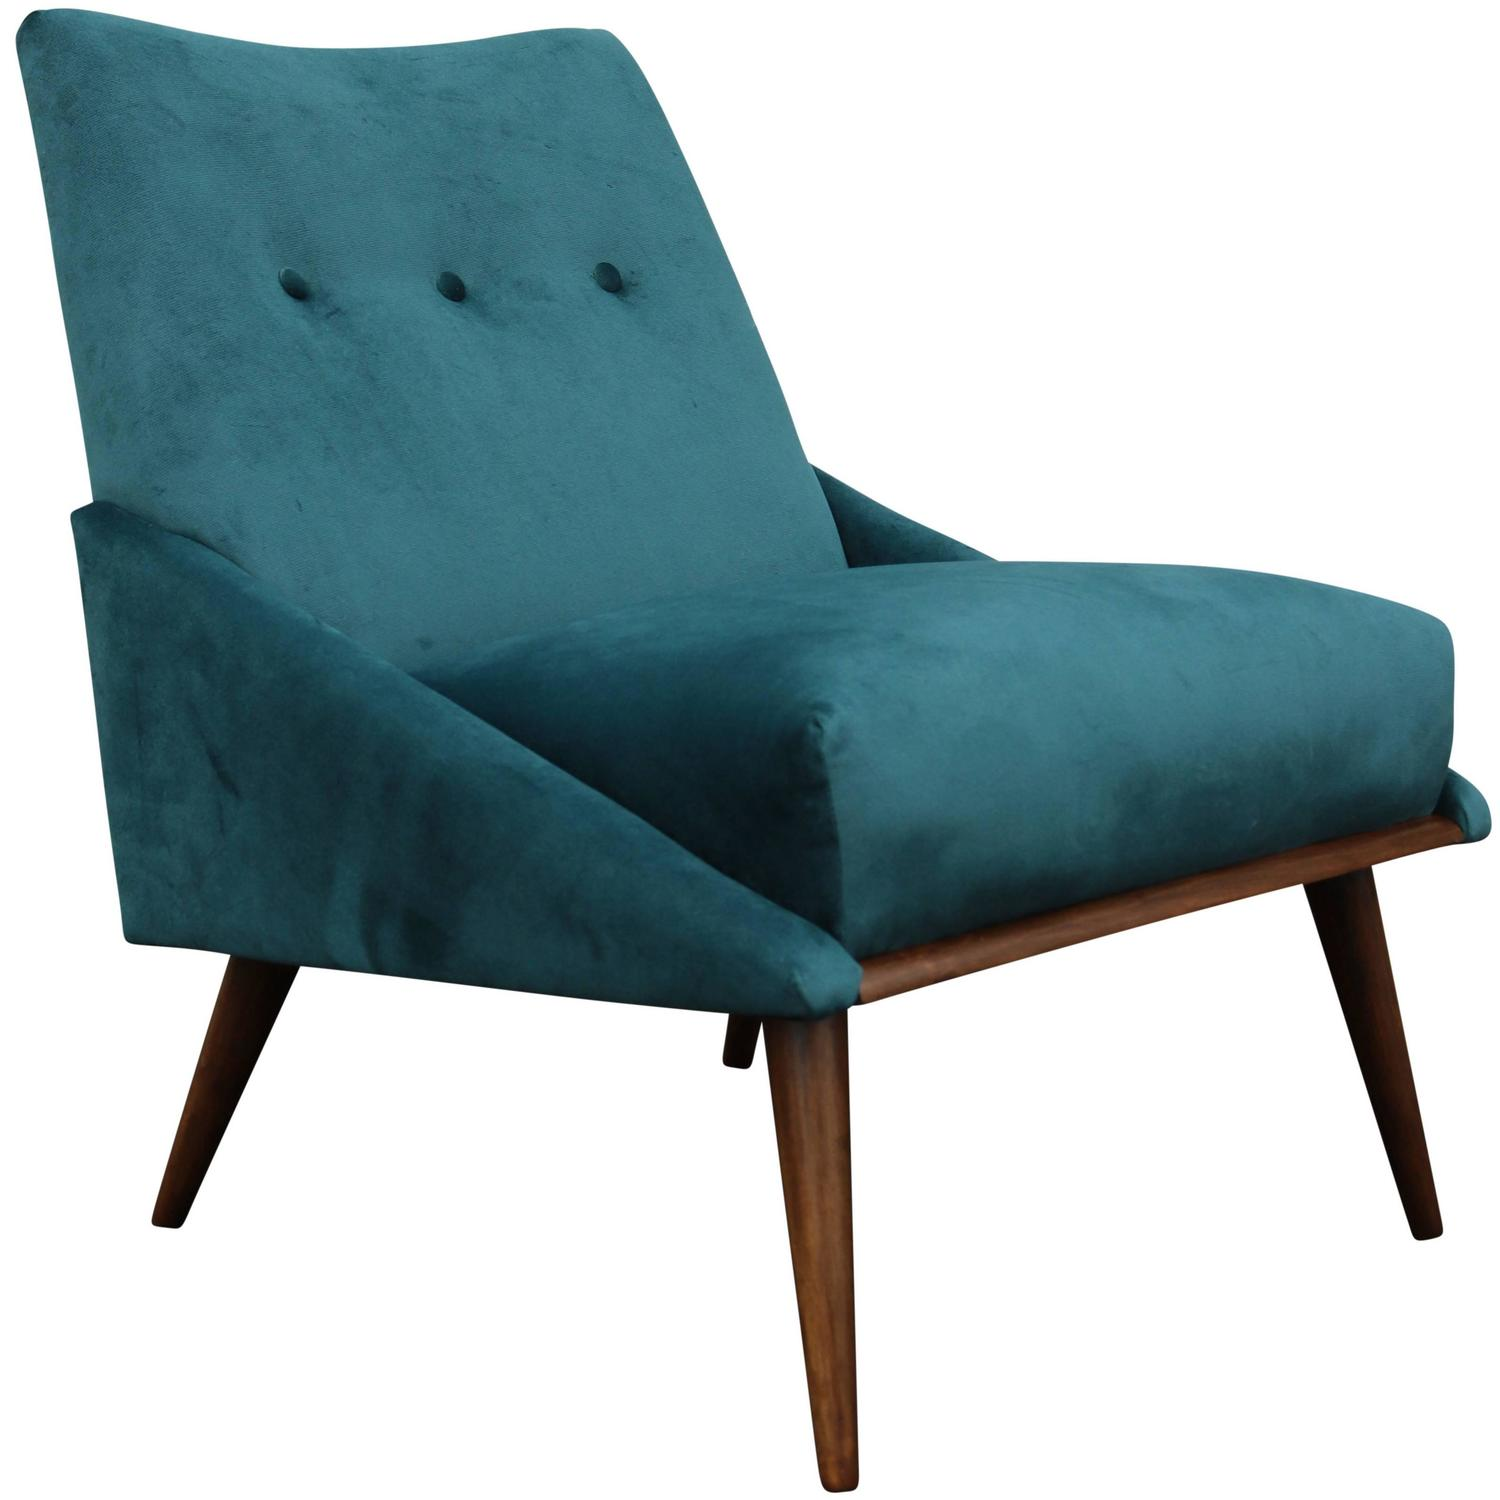 Mid Century Modern Furniture Chair: Peacock Velvet Mid-Century Modern Chair At 1stdibs